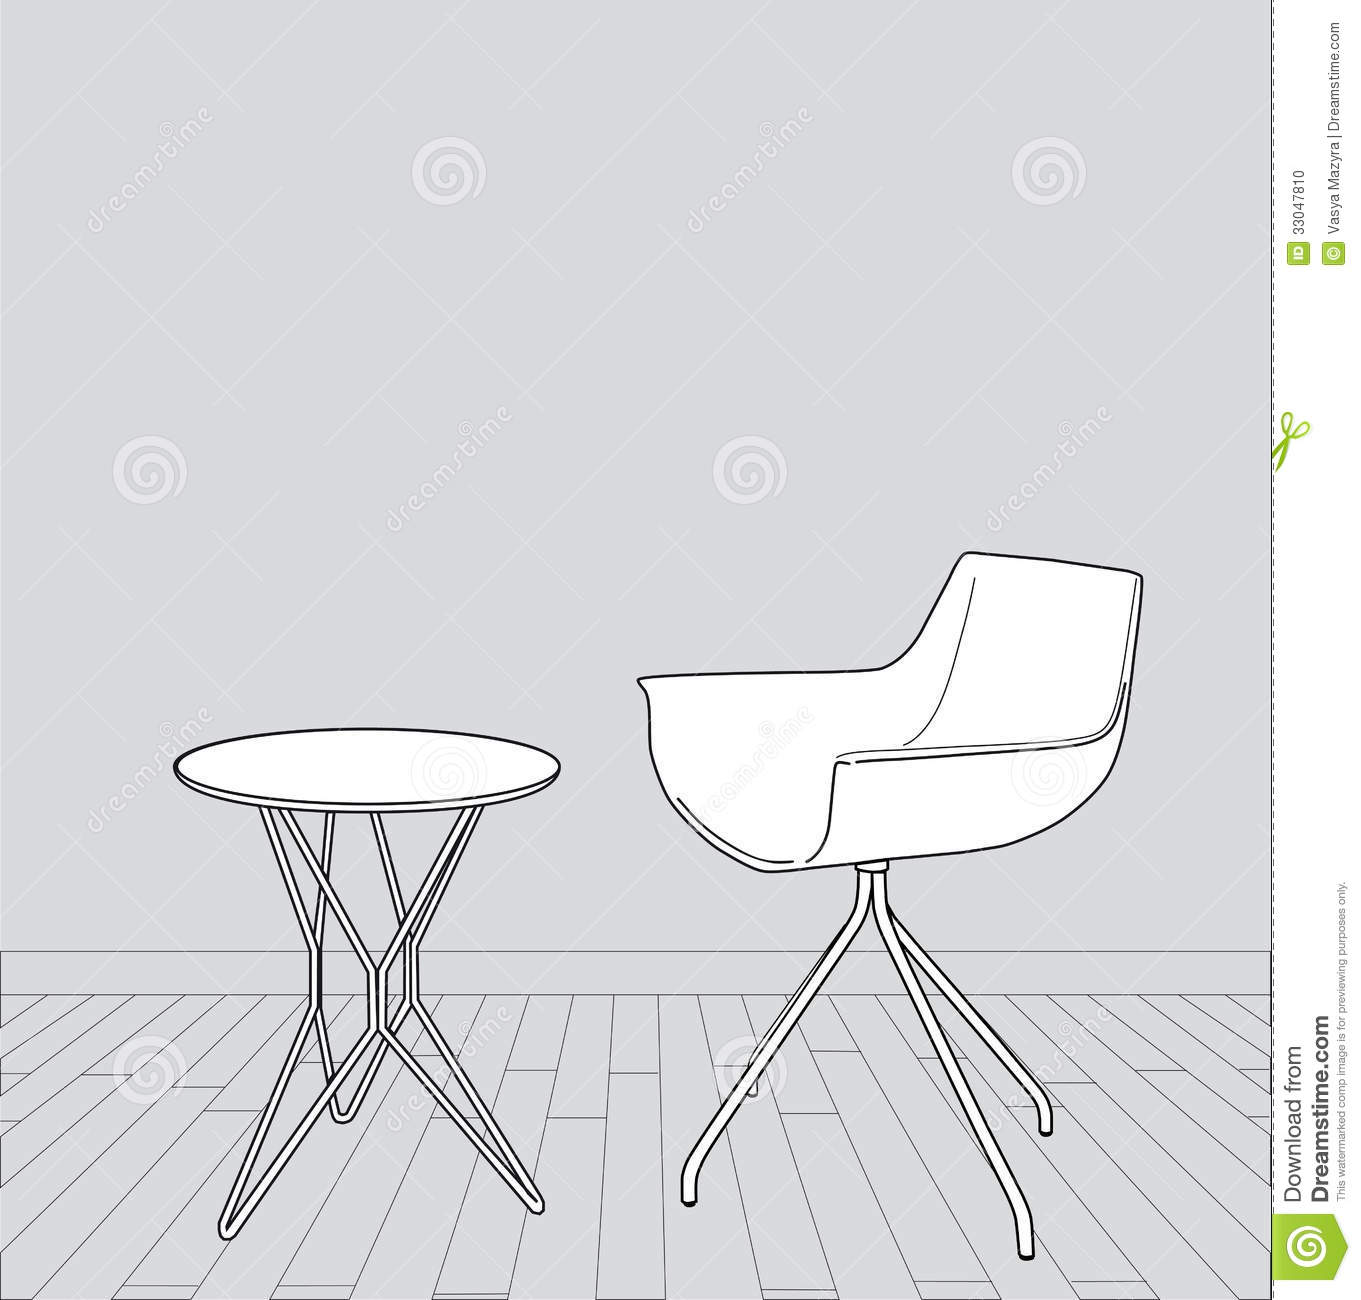 Modern furniture sketches chair sketches - Chair Illustration Interior Modern Sketch Table Vector Exhibition Minimalistic Furniture